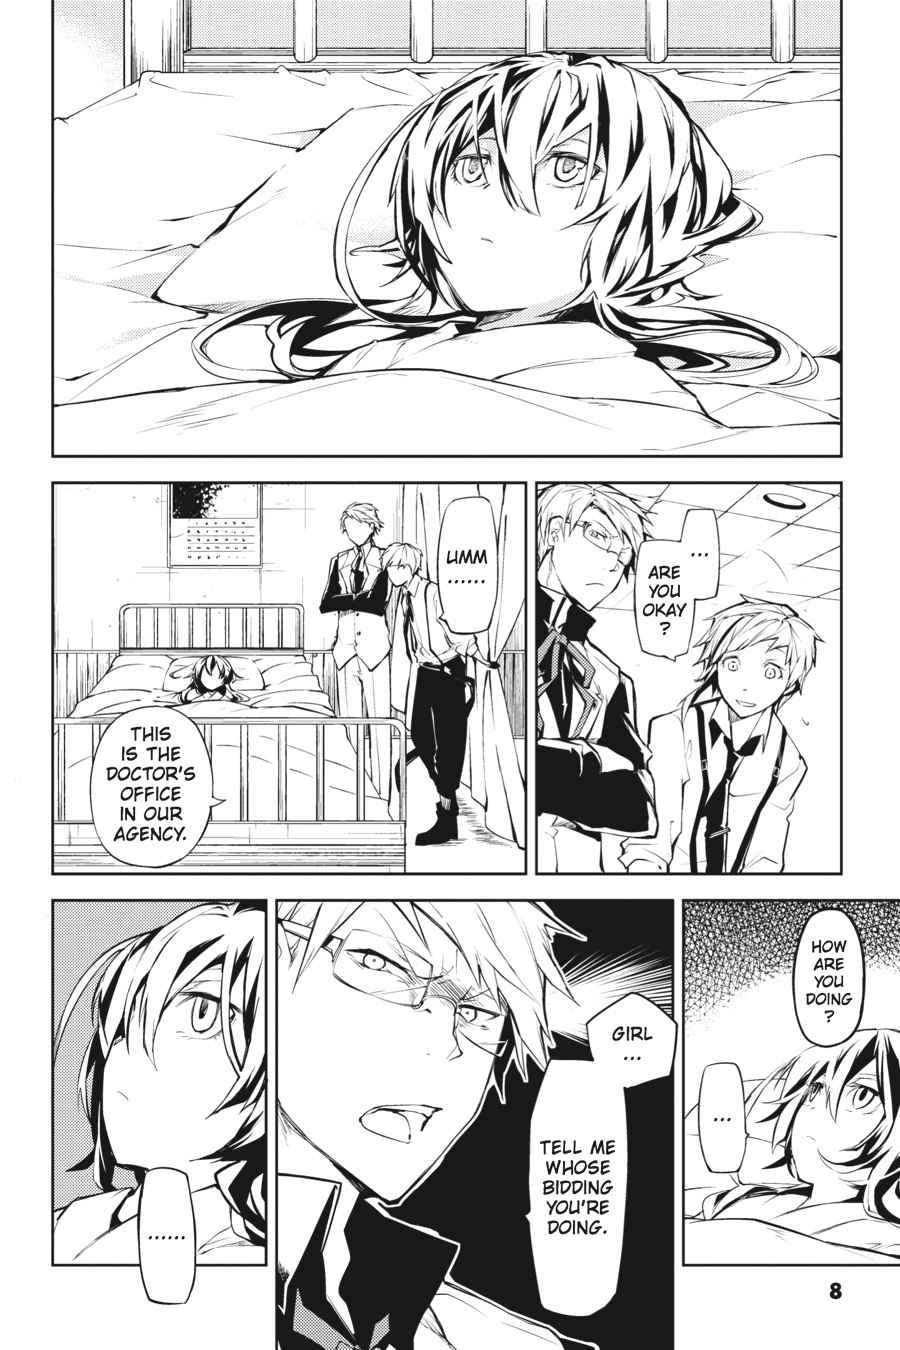 Bungou Stray Dogs Chapter 9 Page 8